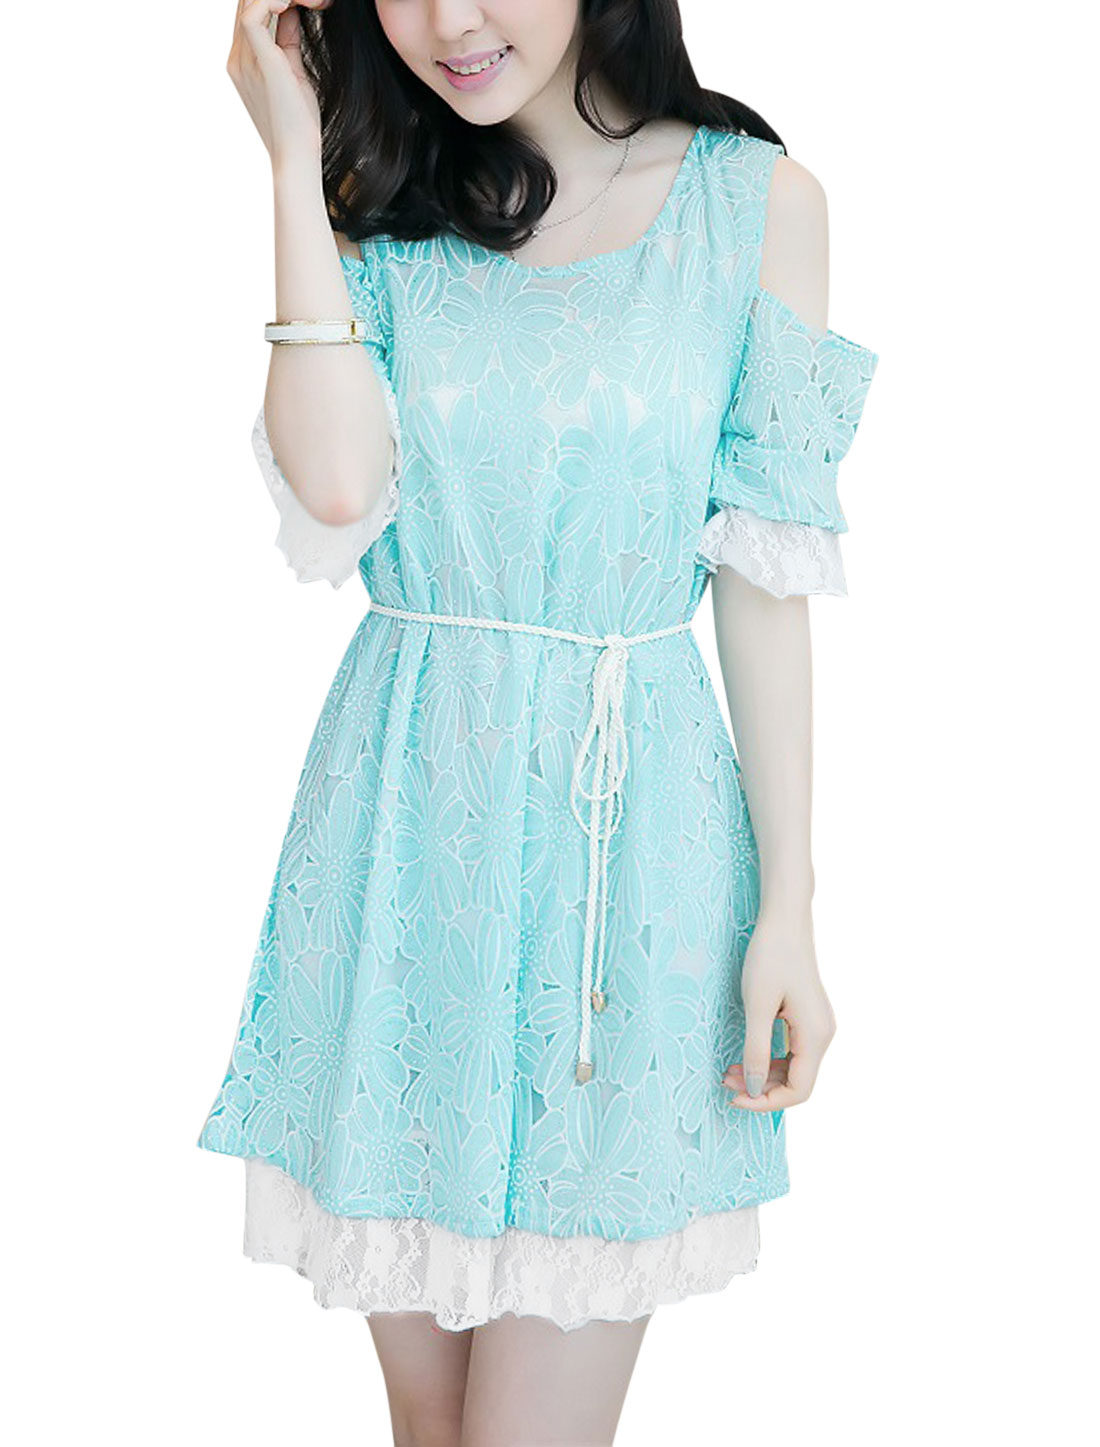 Lady Short Sleeve Round Neck Flower Pattern Dress w Waist String Sky Blue M